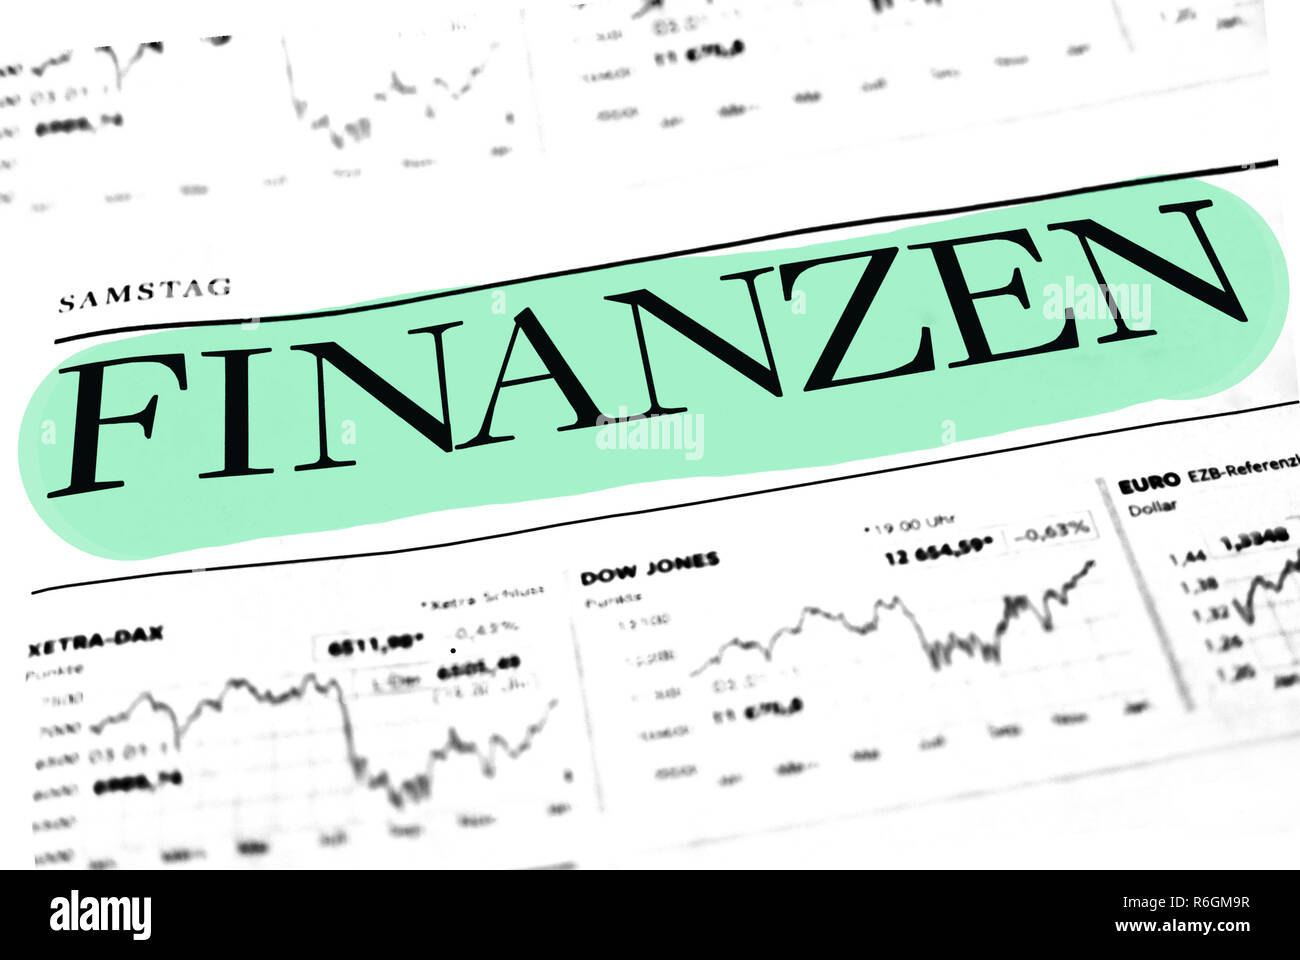 Finance report on the world - Stock Image